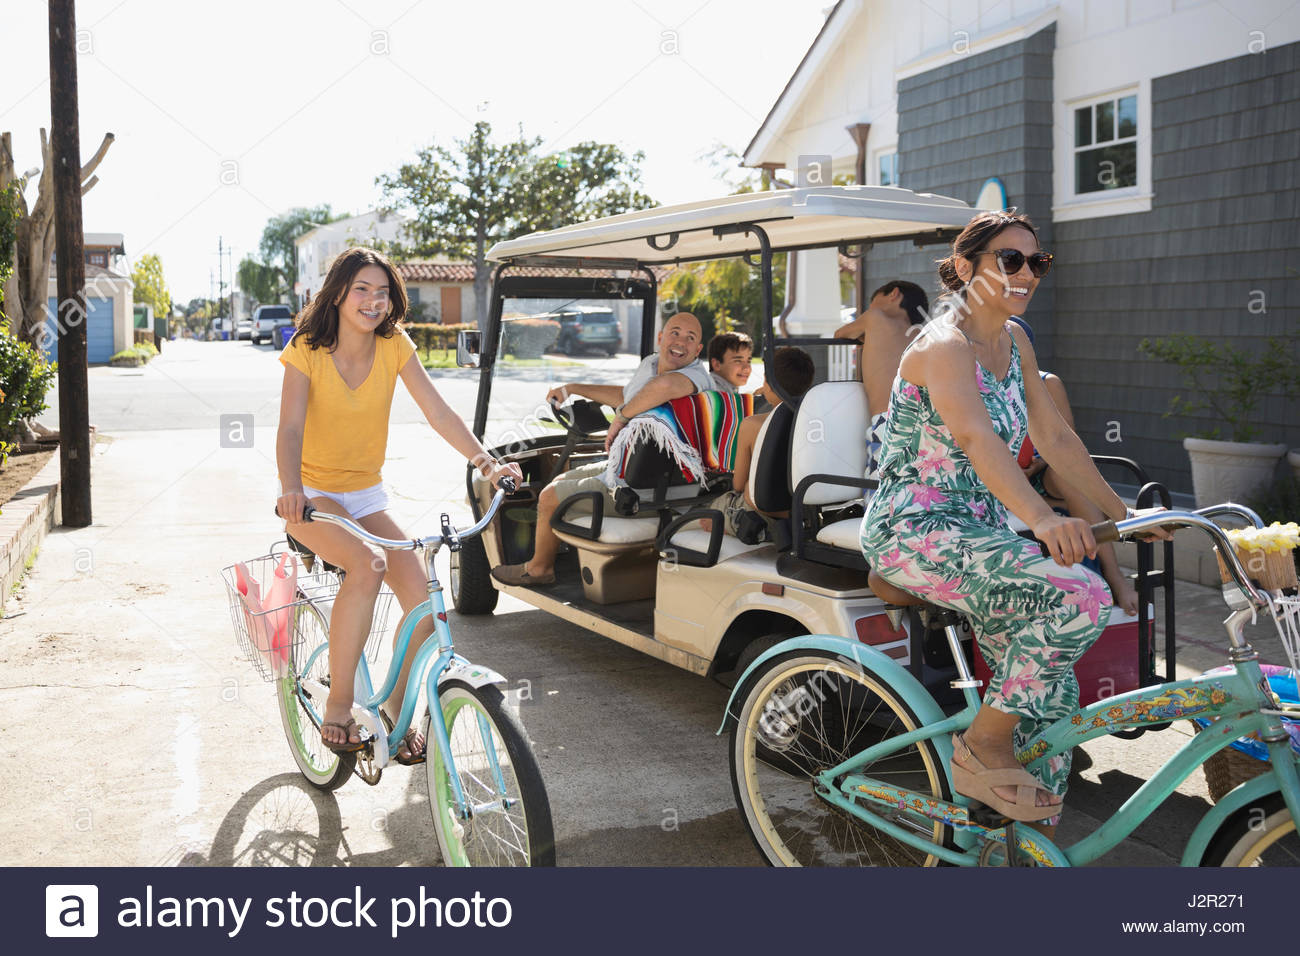 Family with beach cruiser bicycles and golf cart in summer beach house driveway - Stock Image